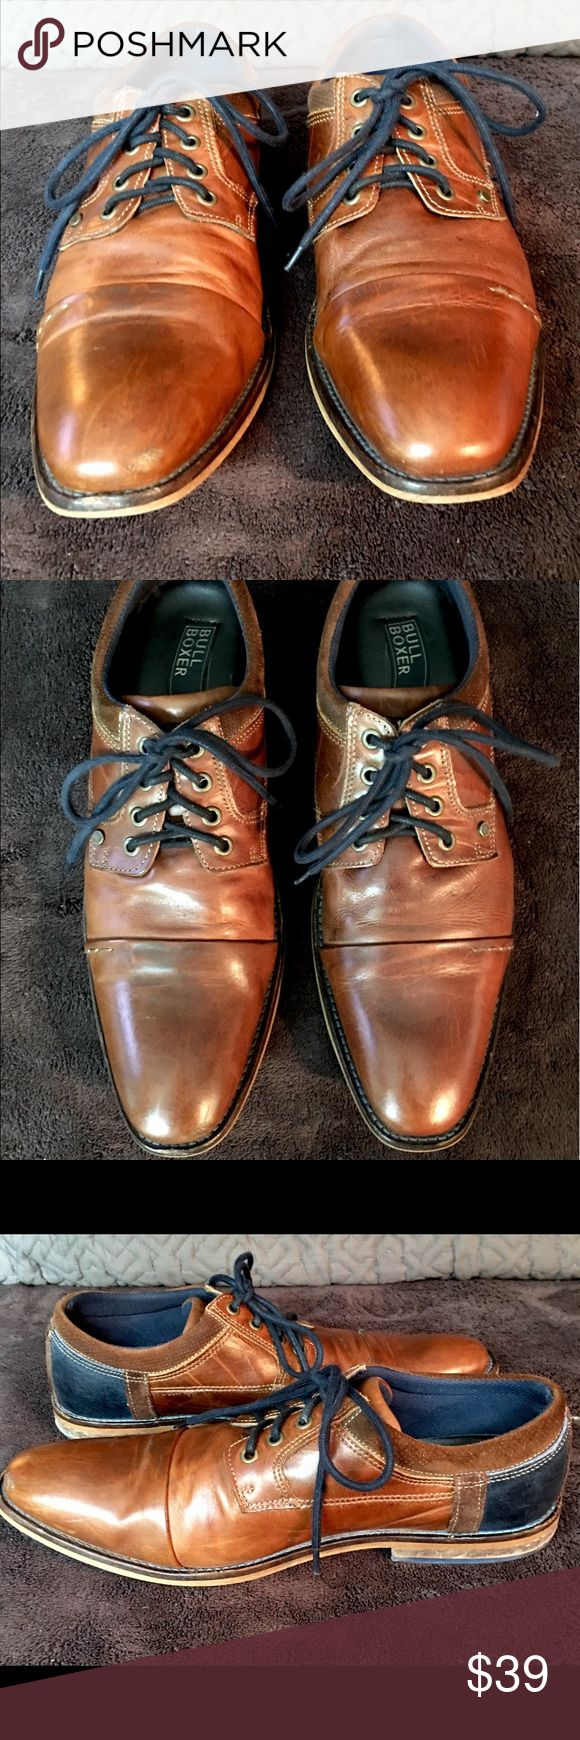 BULL BOXER EUROPEAN LACE UP SHOES EUC BULL BOXER LACE UP DERBYS IN RICH, PATINA BROWN LEATHER W/ STRIKING NAVY LEATHER ACCENTS. SIZE IS MENS 10. Crafted in Portugal, these fine lace ups are the epitome of refinement with a fashion forward twist. The unexpected Navy accents on the heel add just the right amount of whimsy to an otherwise proper shoe. Take a chance, you'll be glad you did! Bull Boxer Shoes Oxfords & Derbys